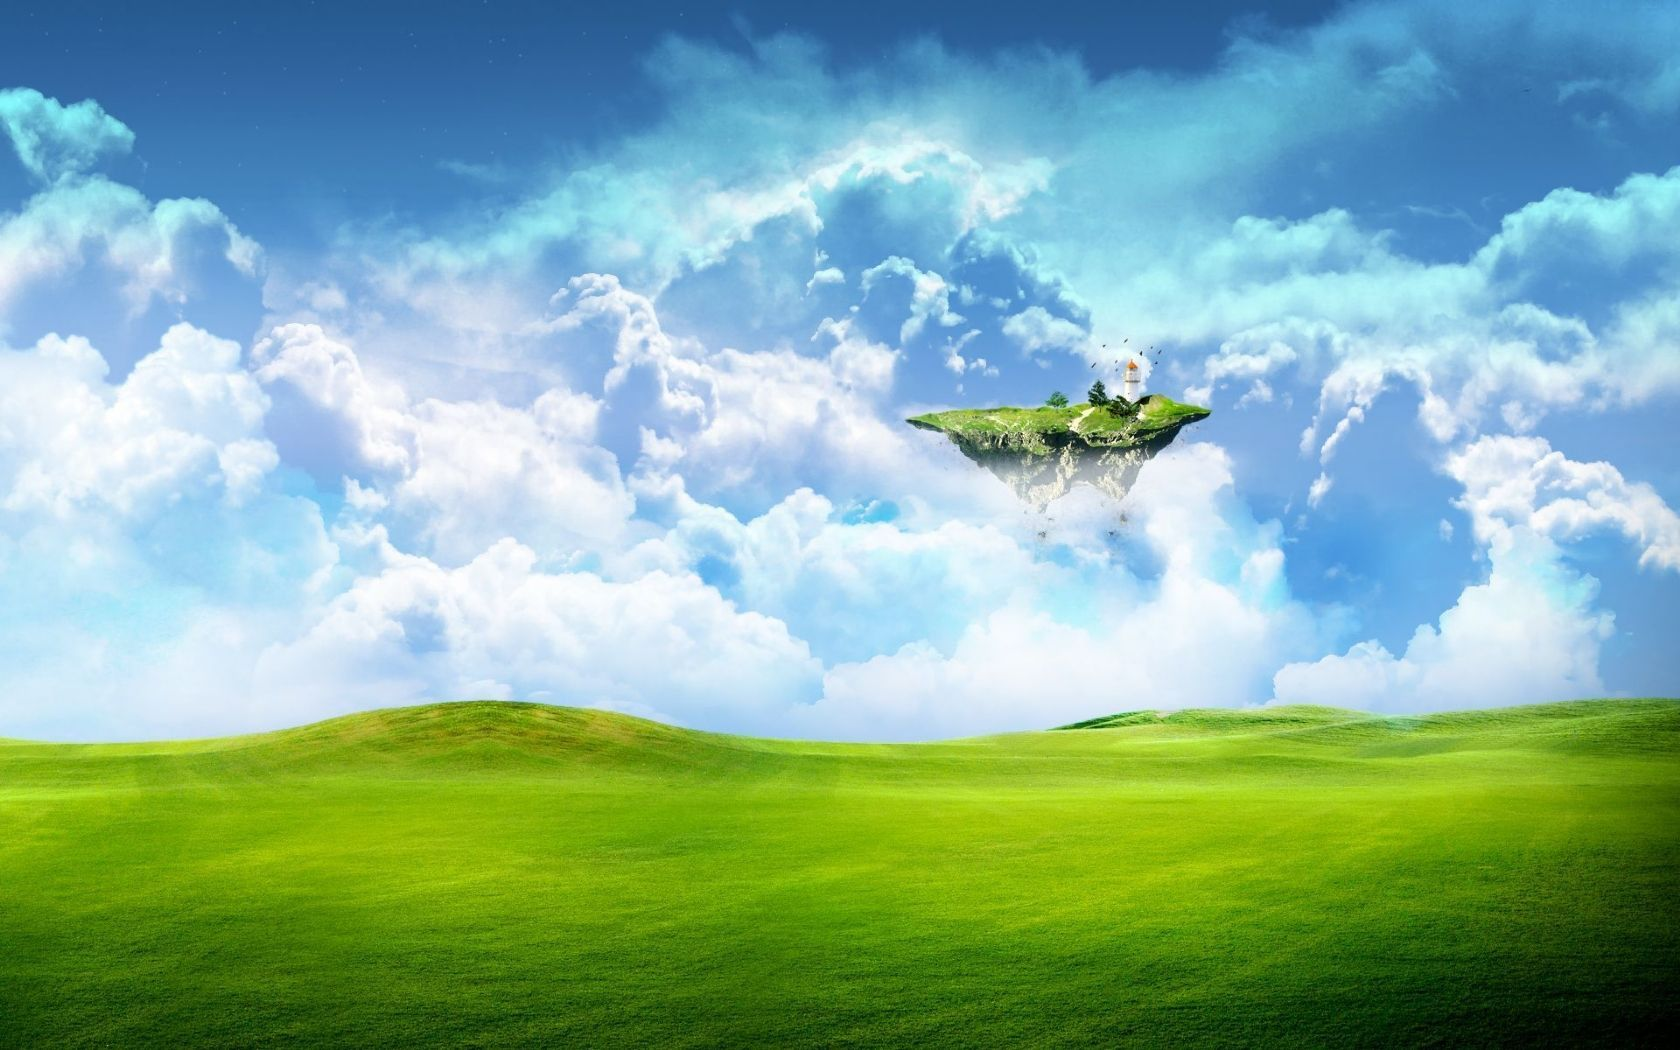 3D Landscape Wallpaper Android 1769 Wallpaper Cool Walldiskpaper 1680x1050